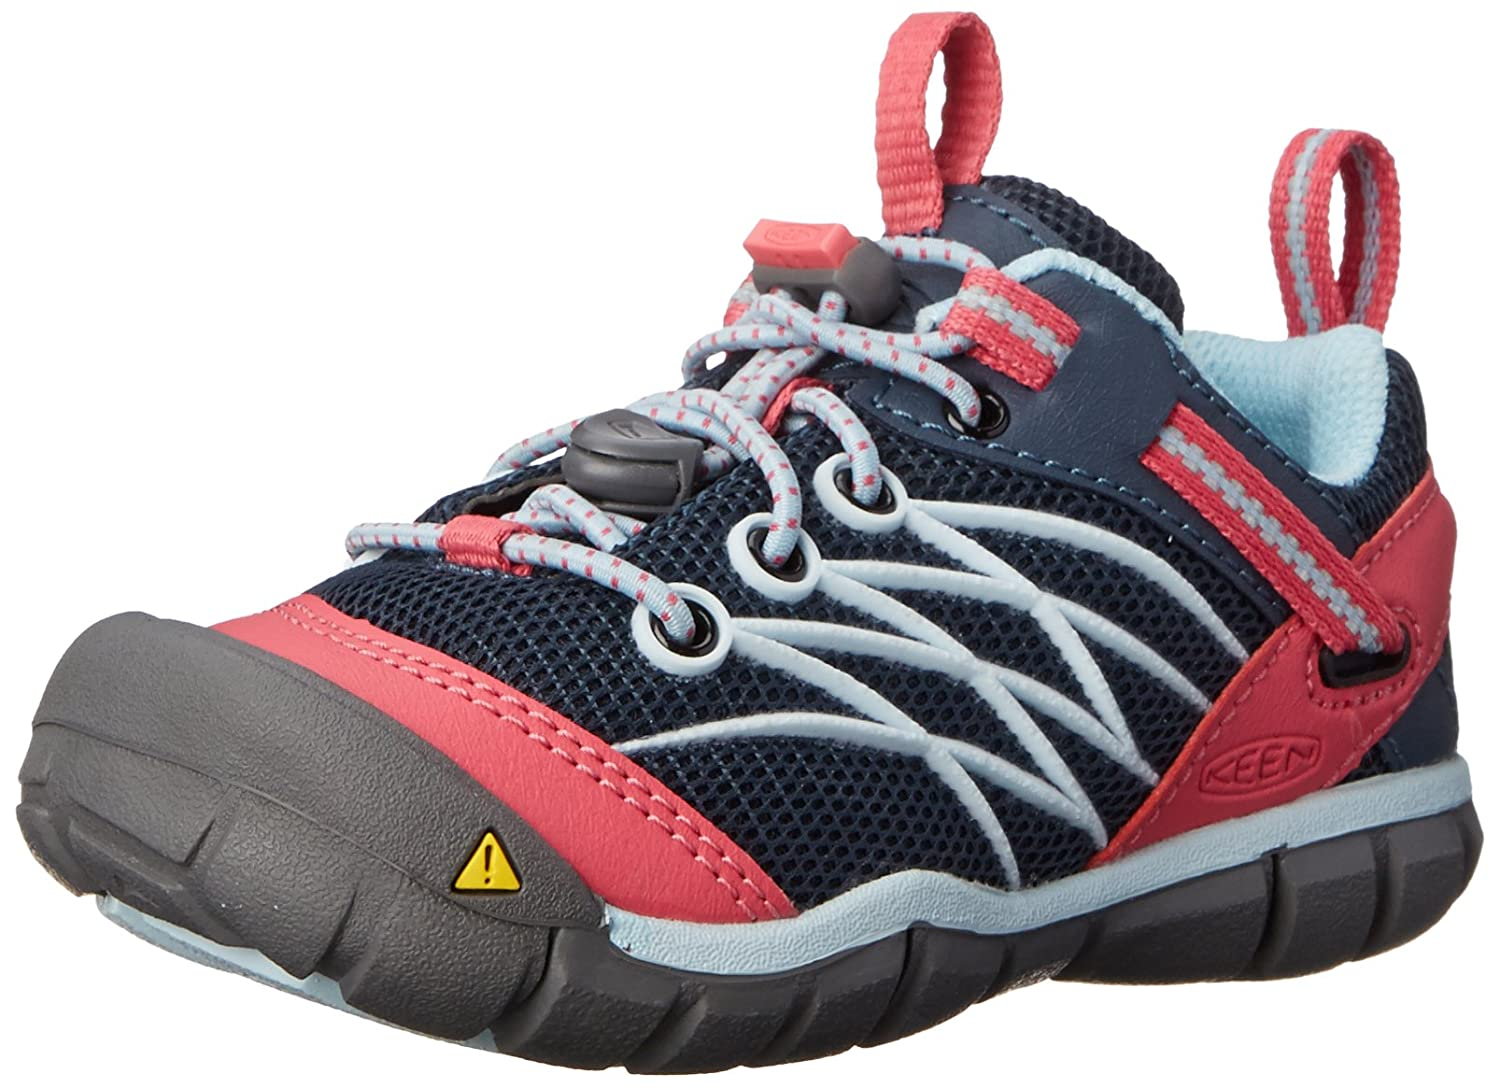 KEEN Chandler CNX Shoe B00L89TTEU 3 M US Little Kid|Midnight Navy/Honeysuckle